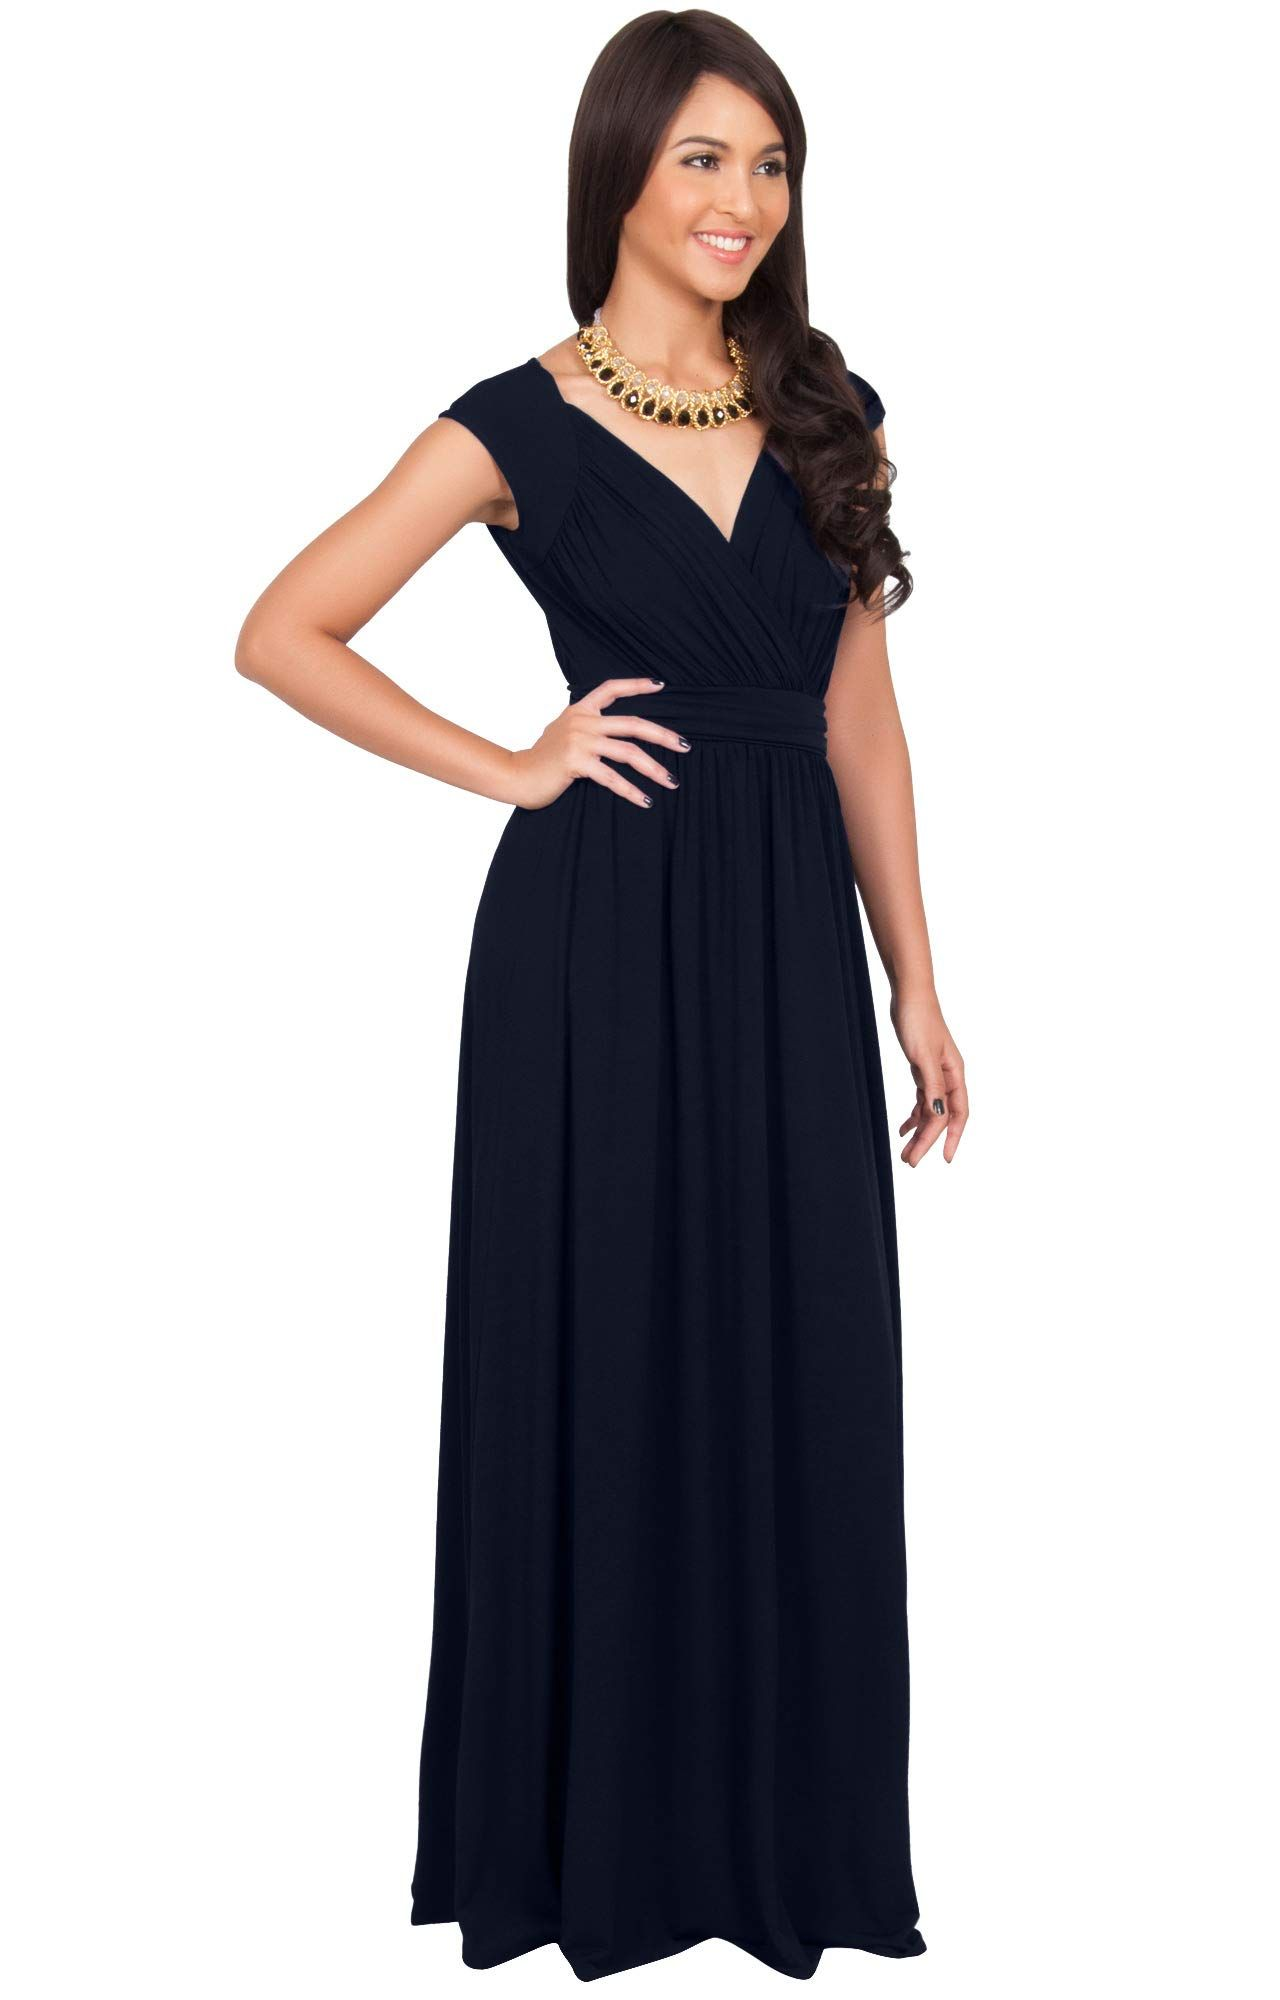 d5247e0d01309 KOH KOH Plus Size Womens Long Cap Short Sleeve Cocktail Evening Sleeveless  Bridesmaid Wedding Party Flowy